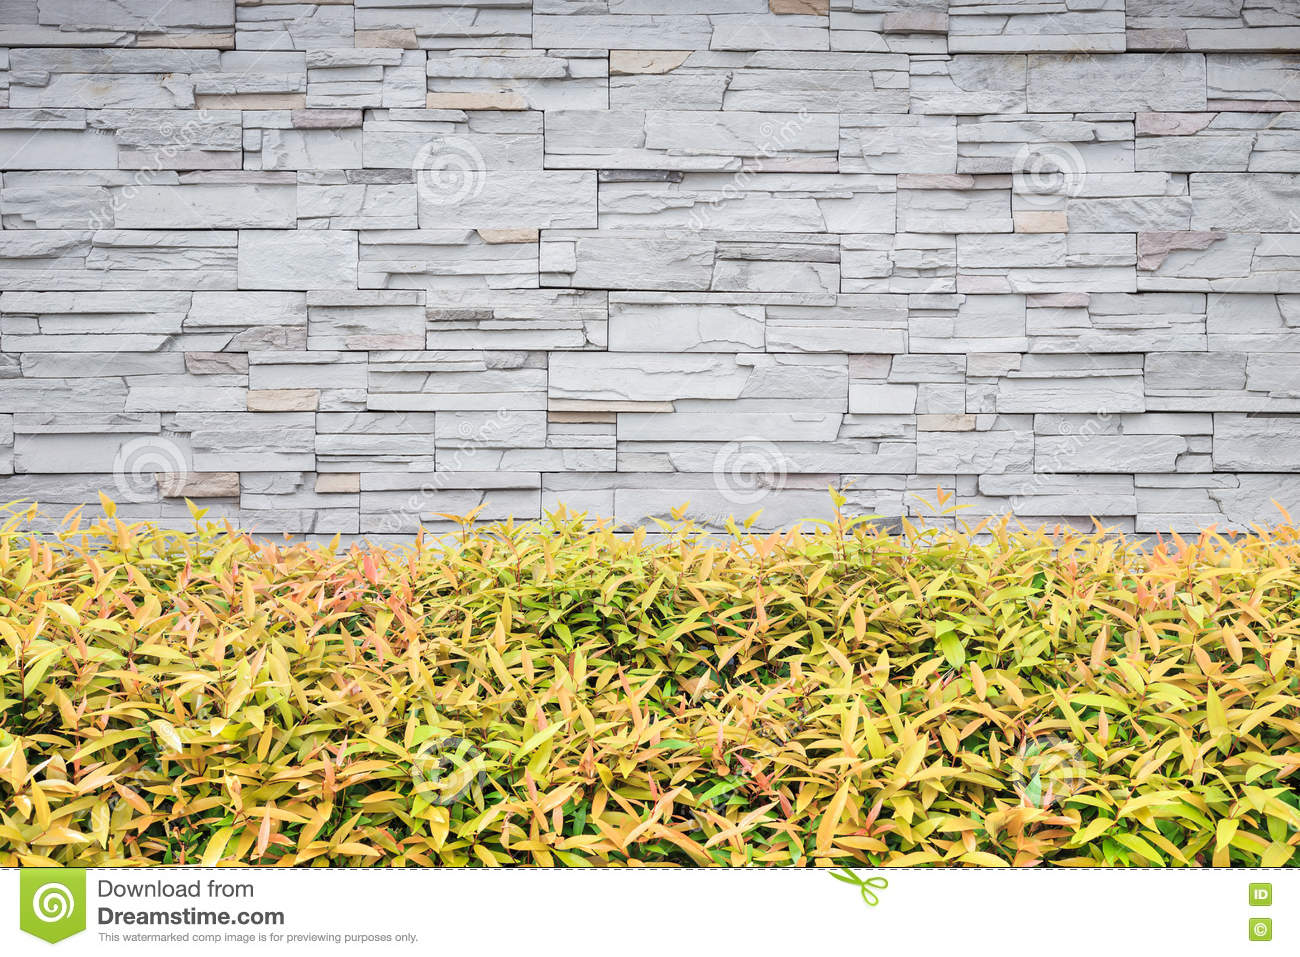 Unique Outdoor Decorative Stone Wall Images - Art & Wall Decor ...